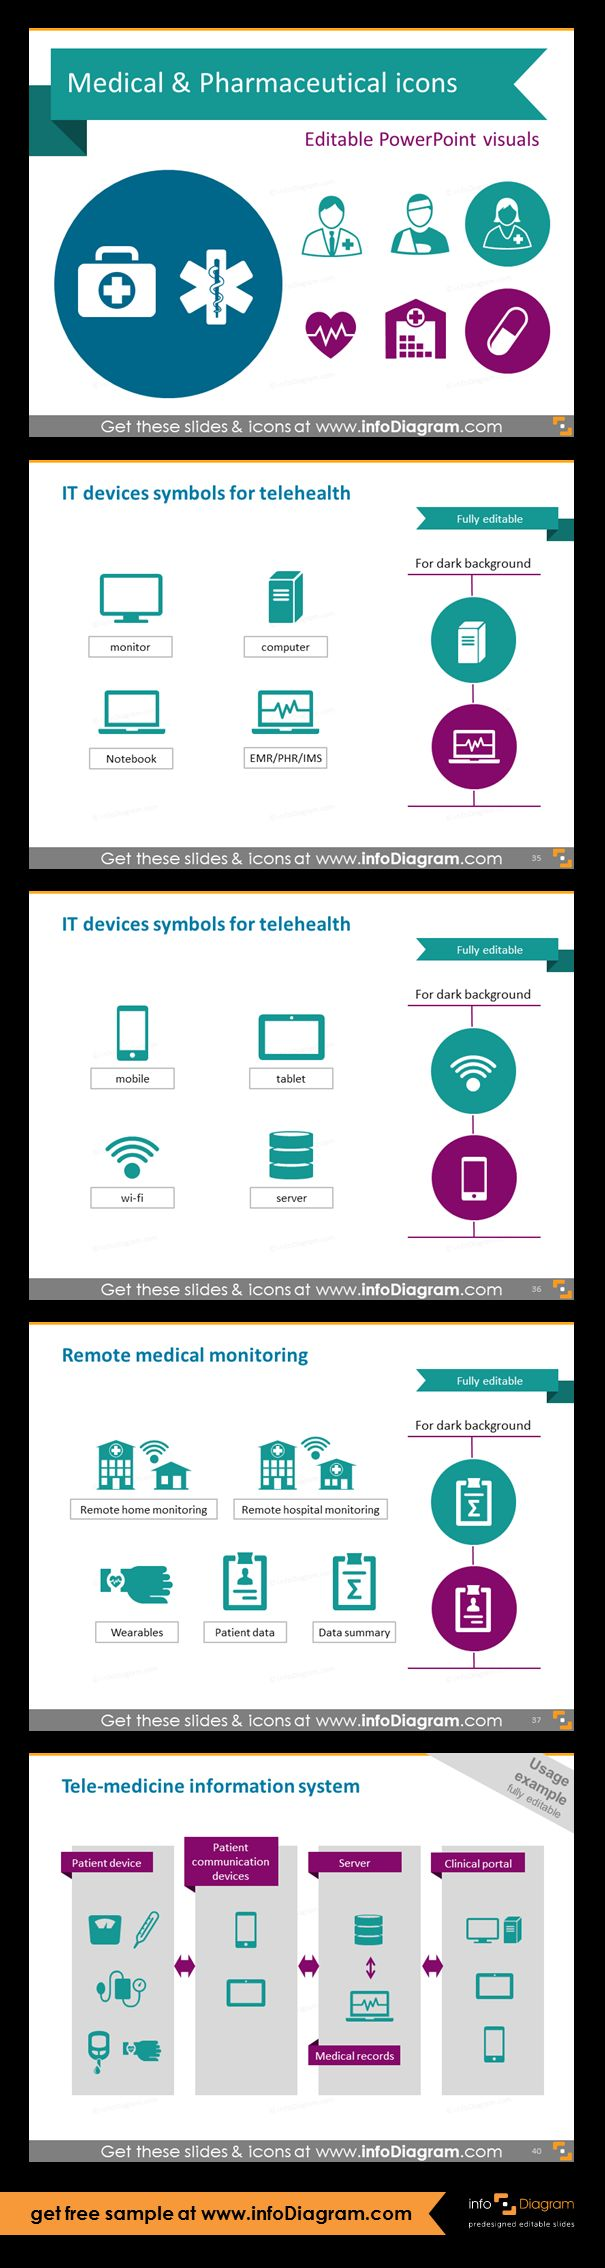 Telehealth and Telemedicine symbols: software, IT, IT devices for telehealth, remote medical monitoring, telemedicine information system.